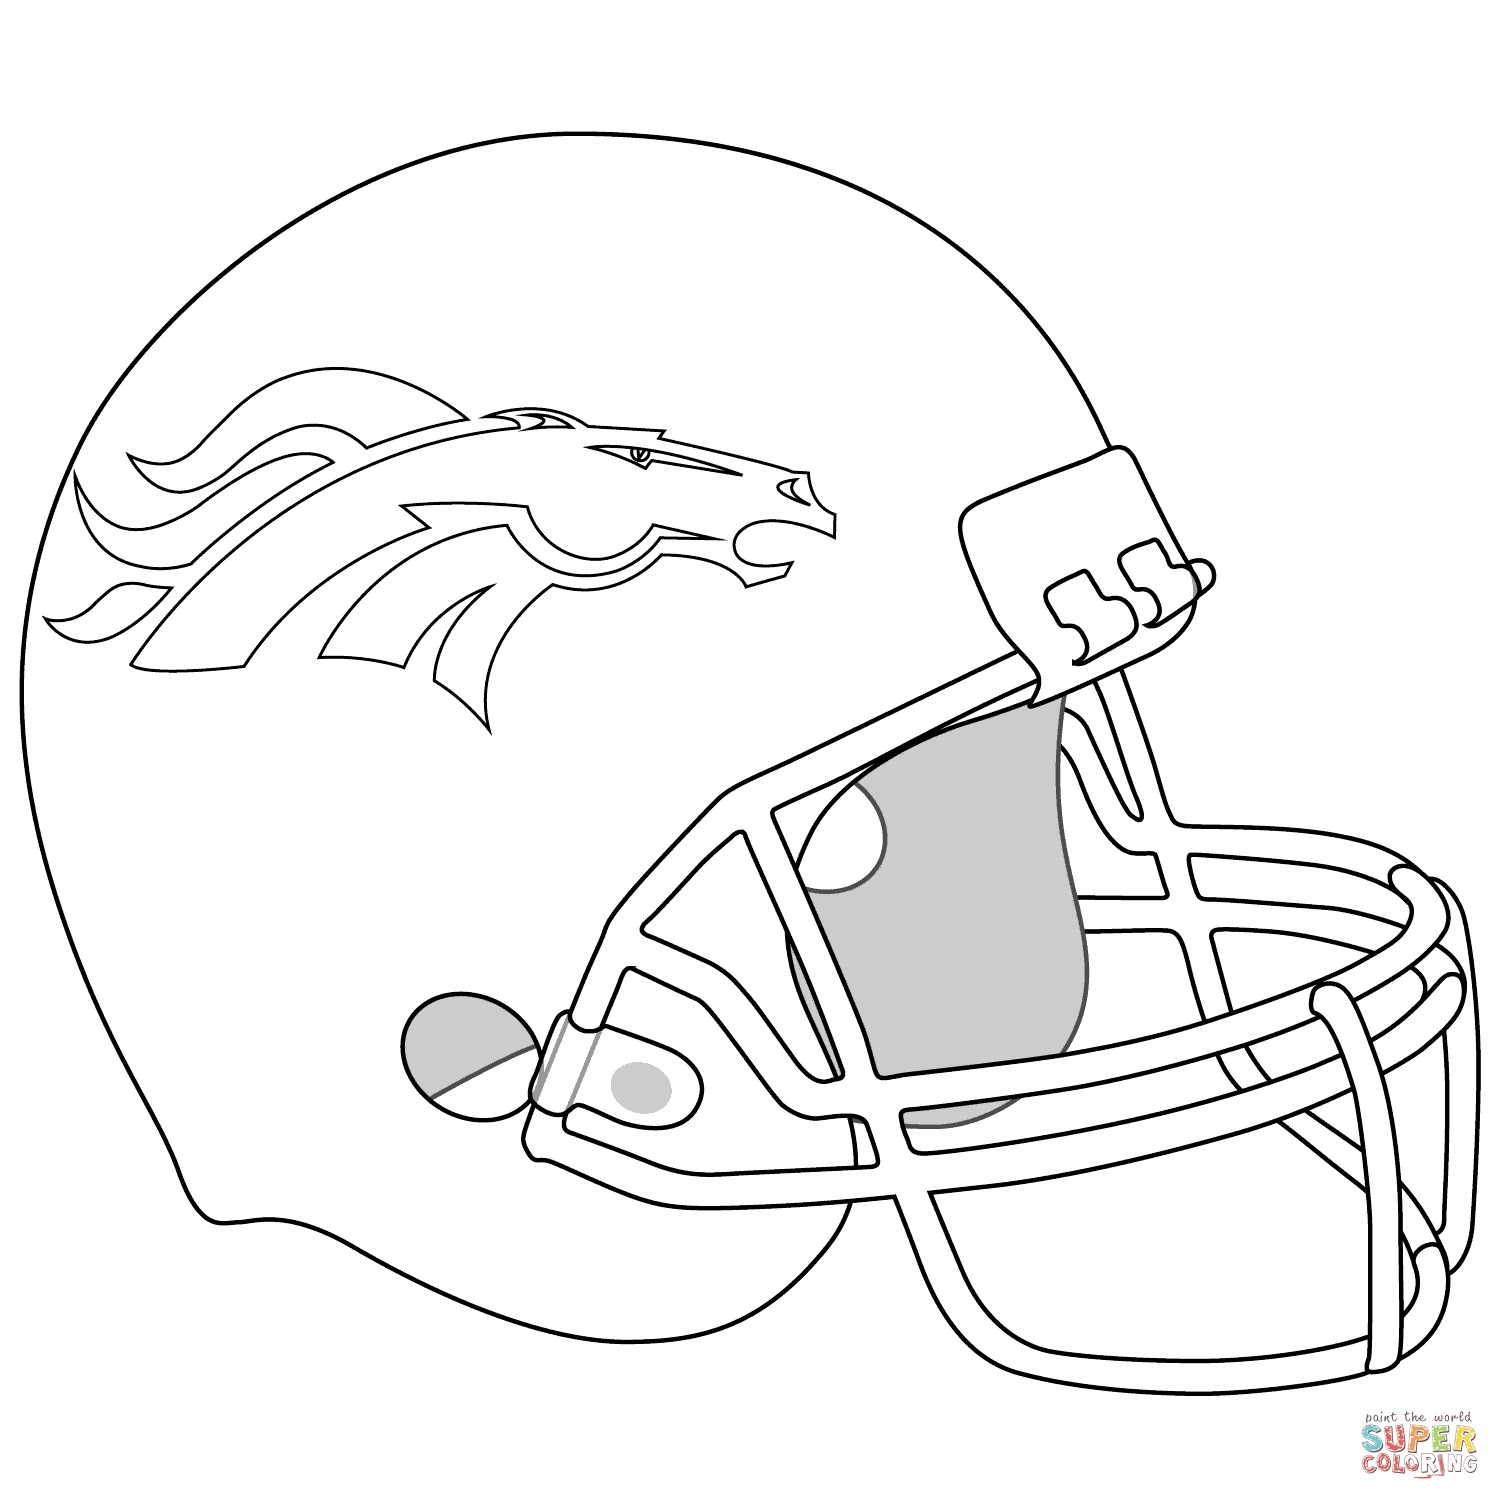 1500x1500 Fresh Coloring Pages Sports Logos